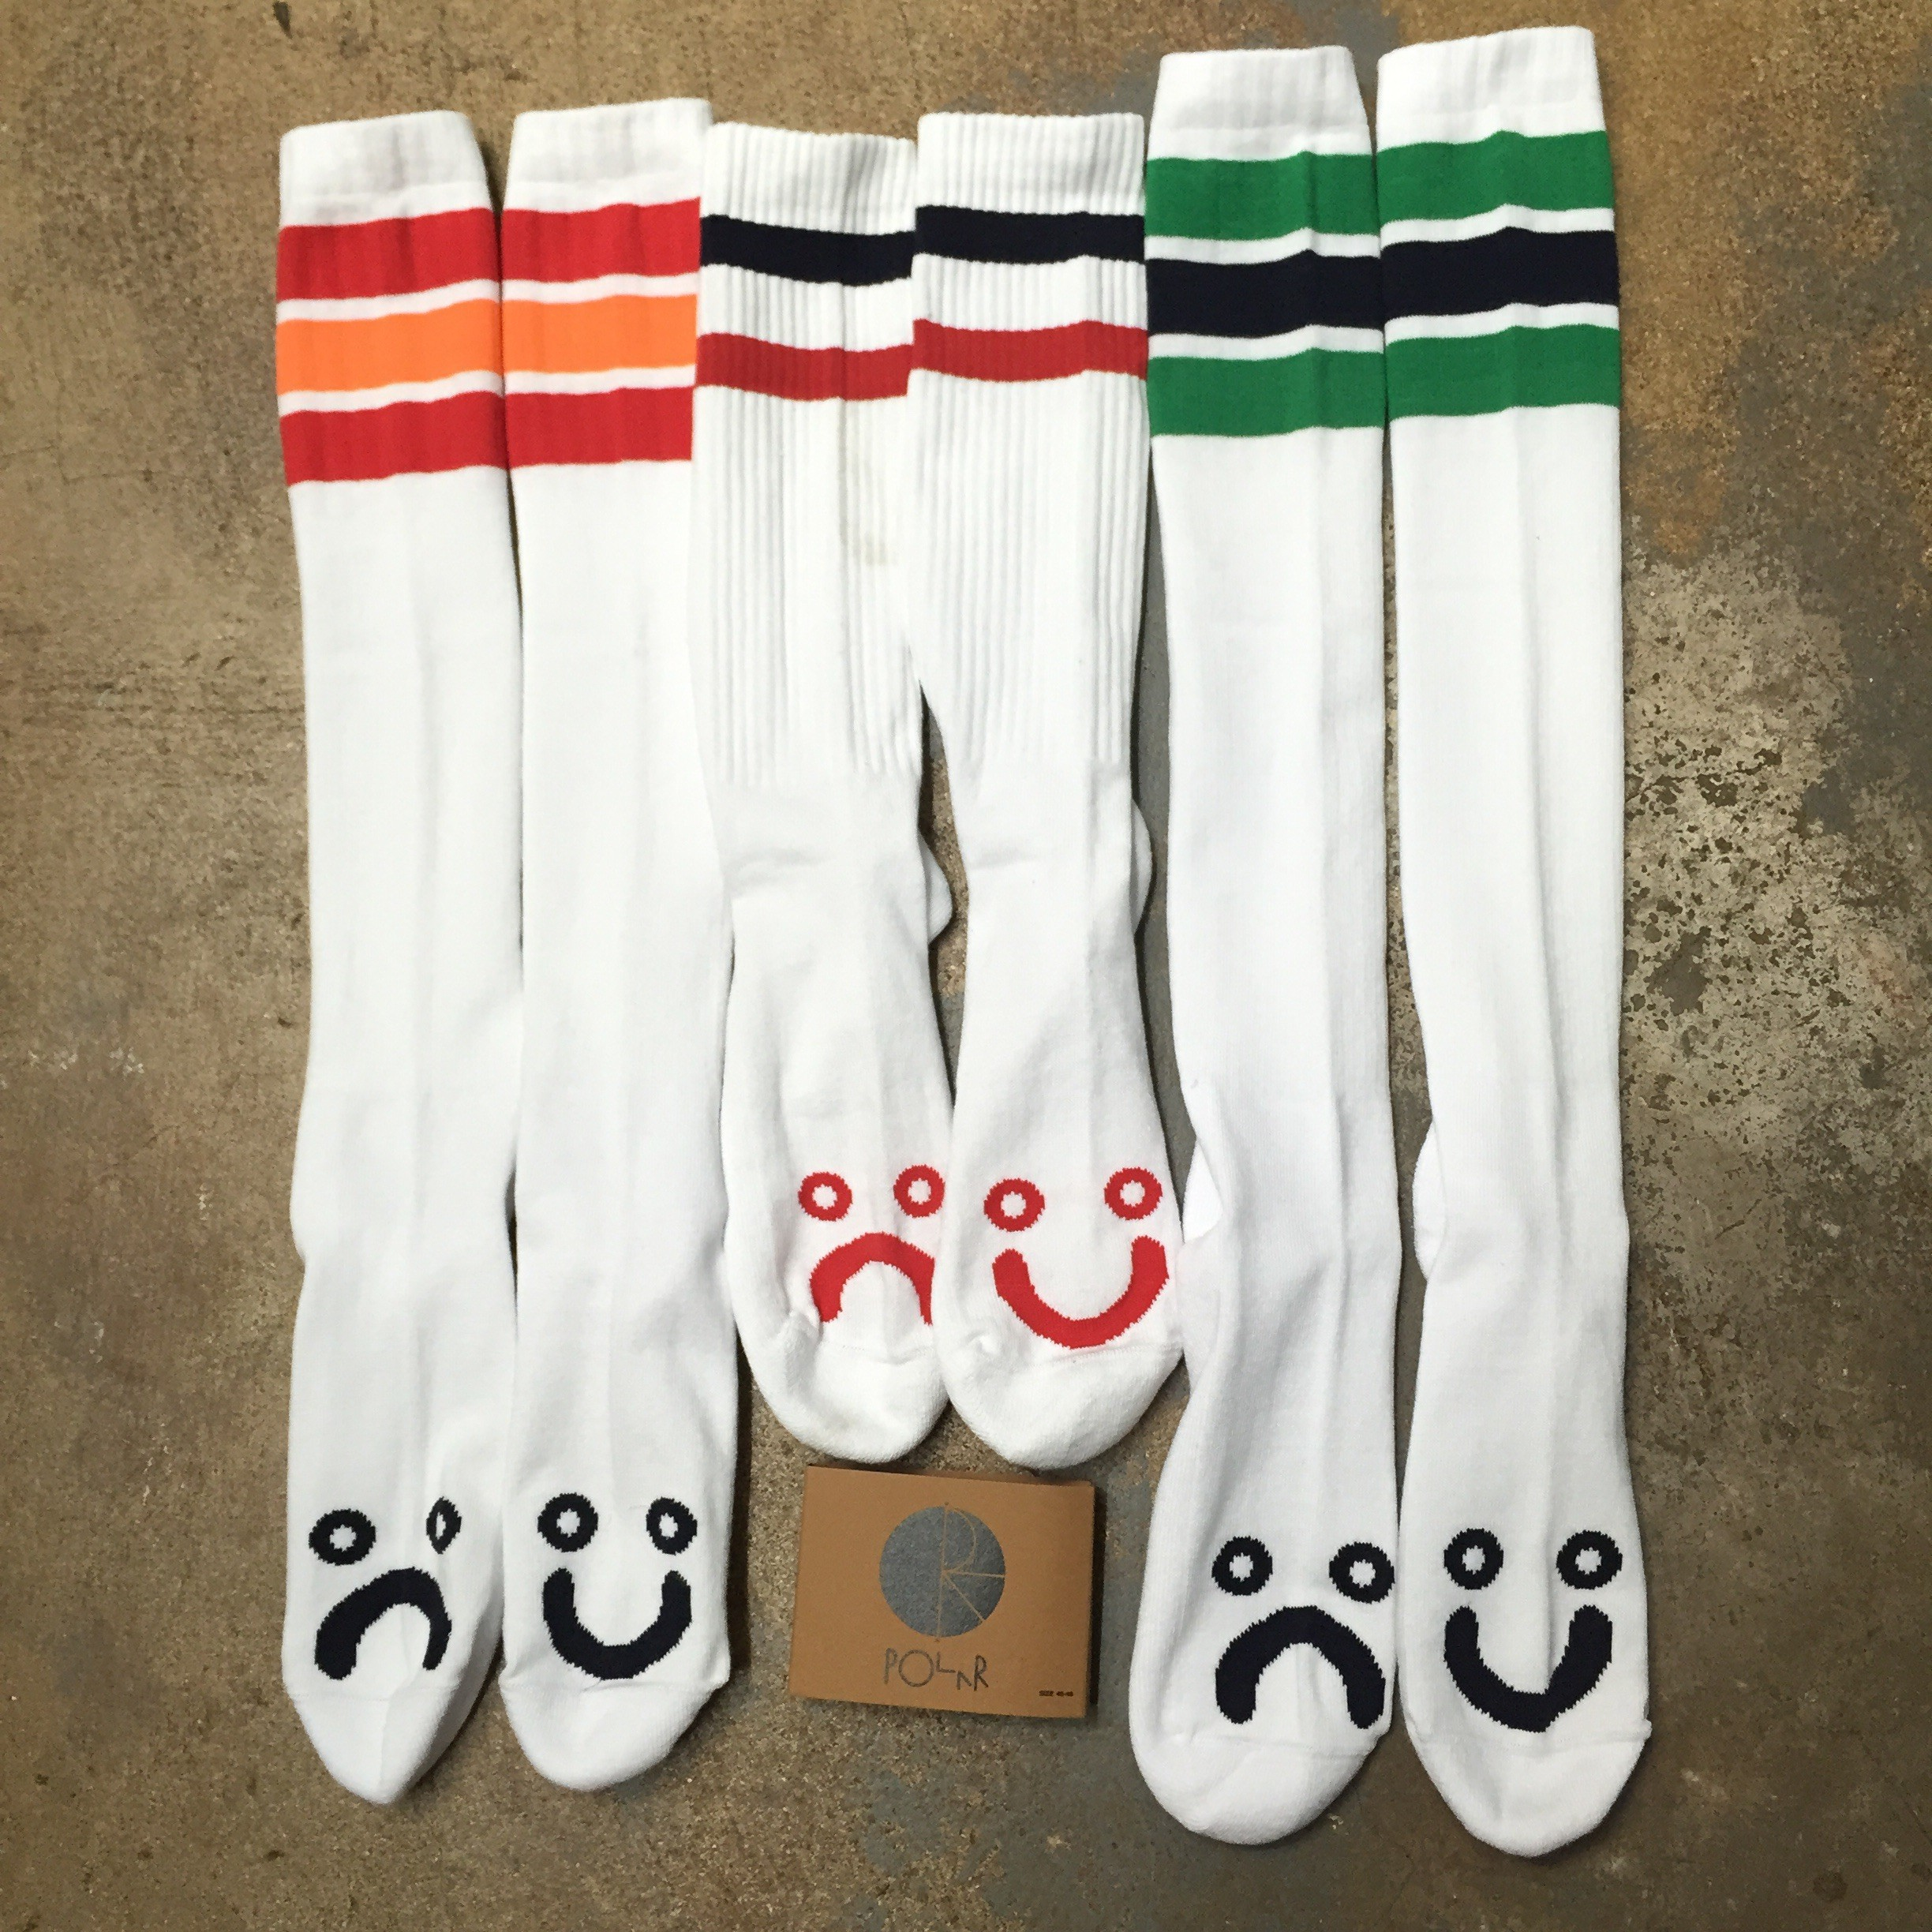 Polar happy/sad socks!